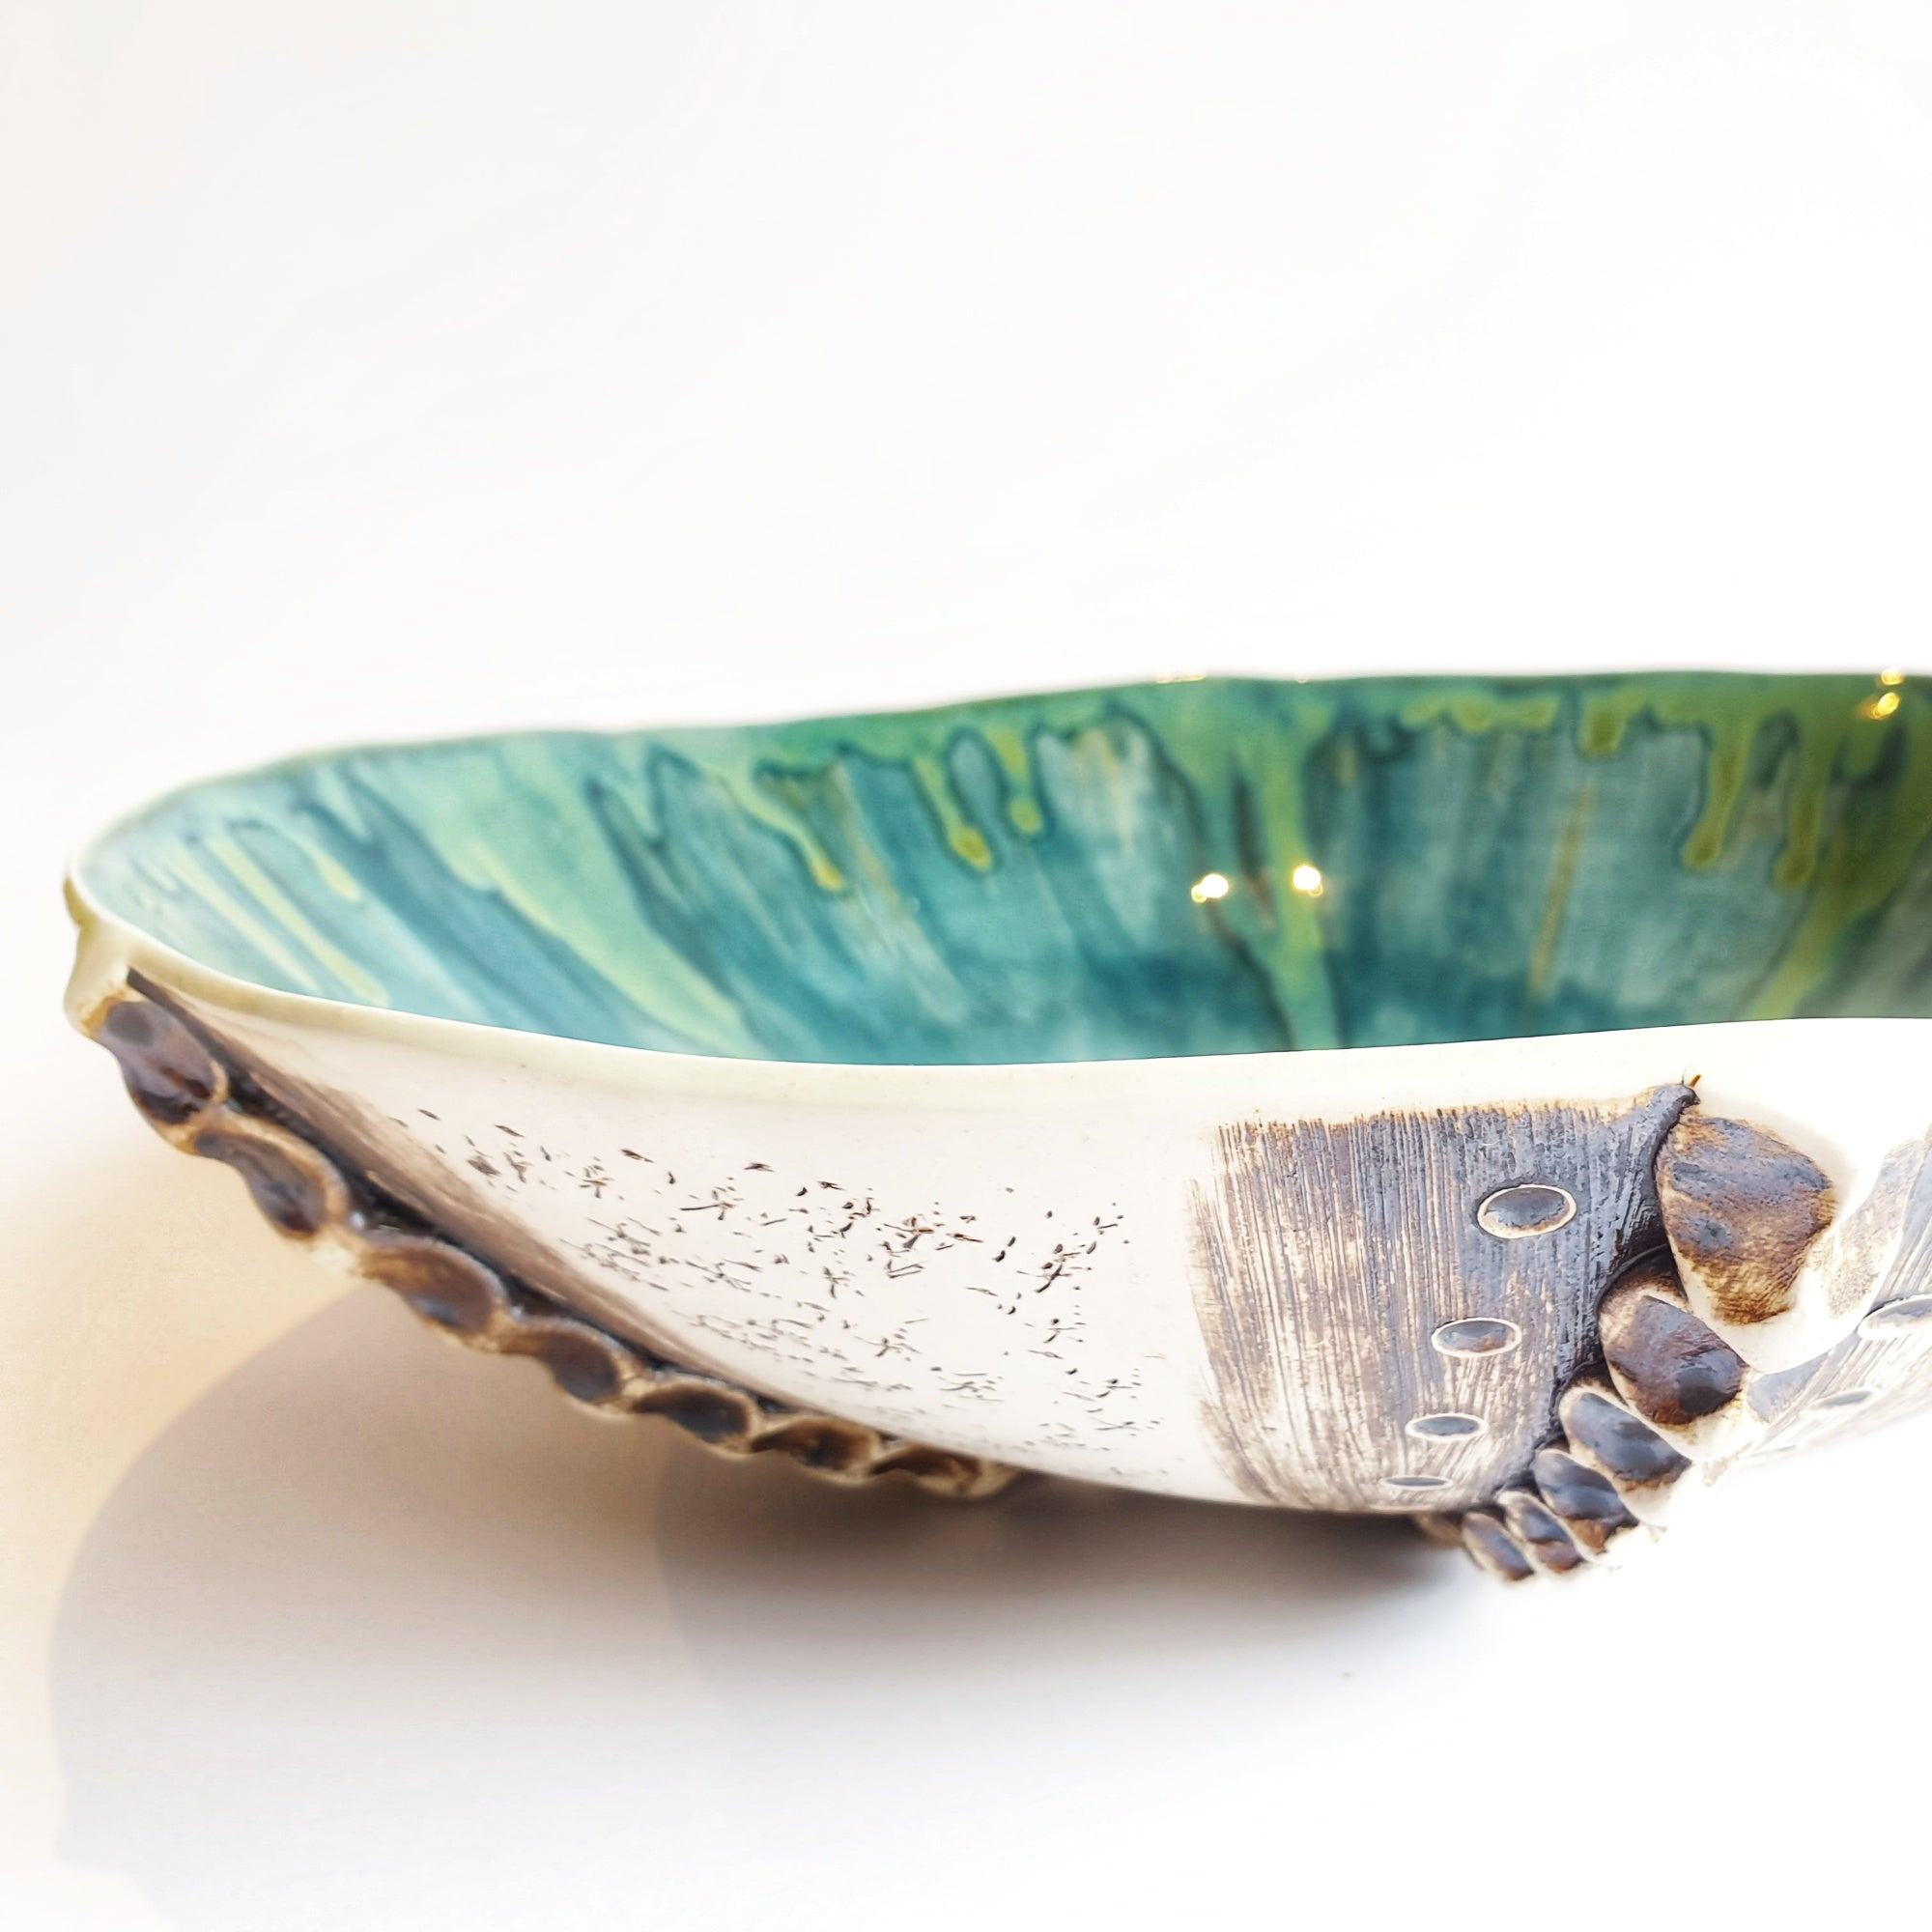 Large Sea Urchin Bowl (34 cm diameter) - Nada Spencer Ceramics